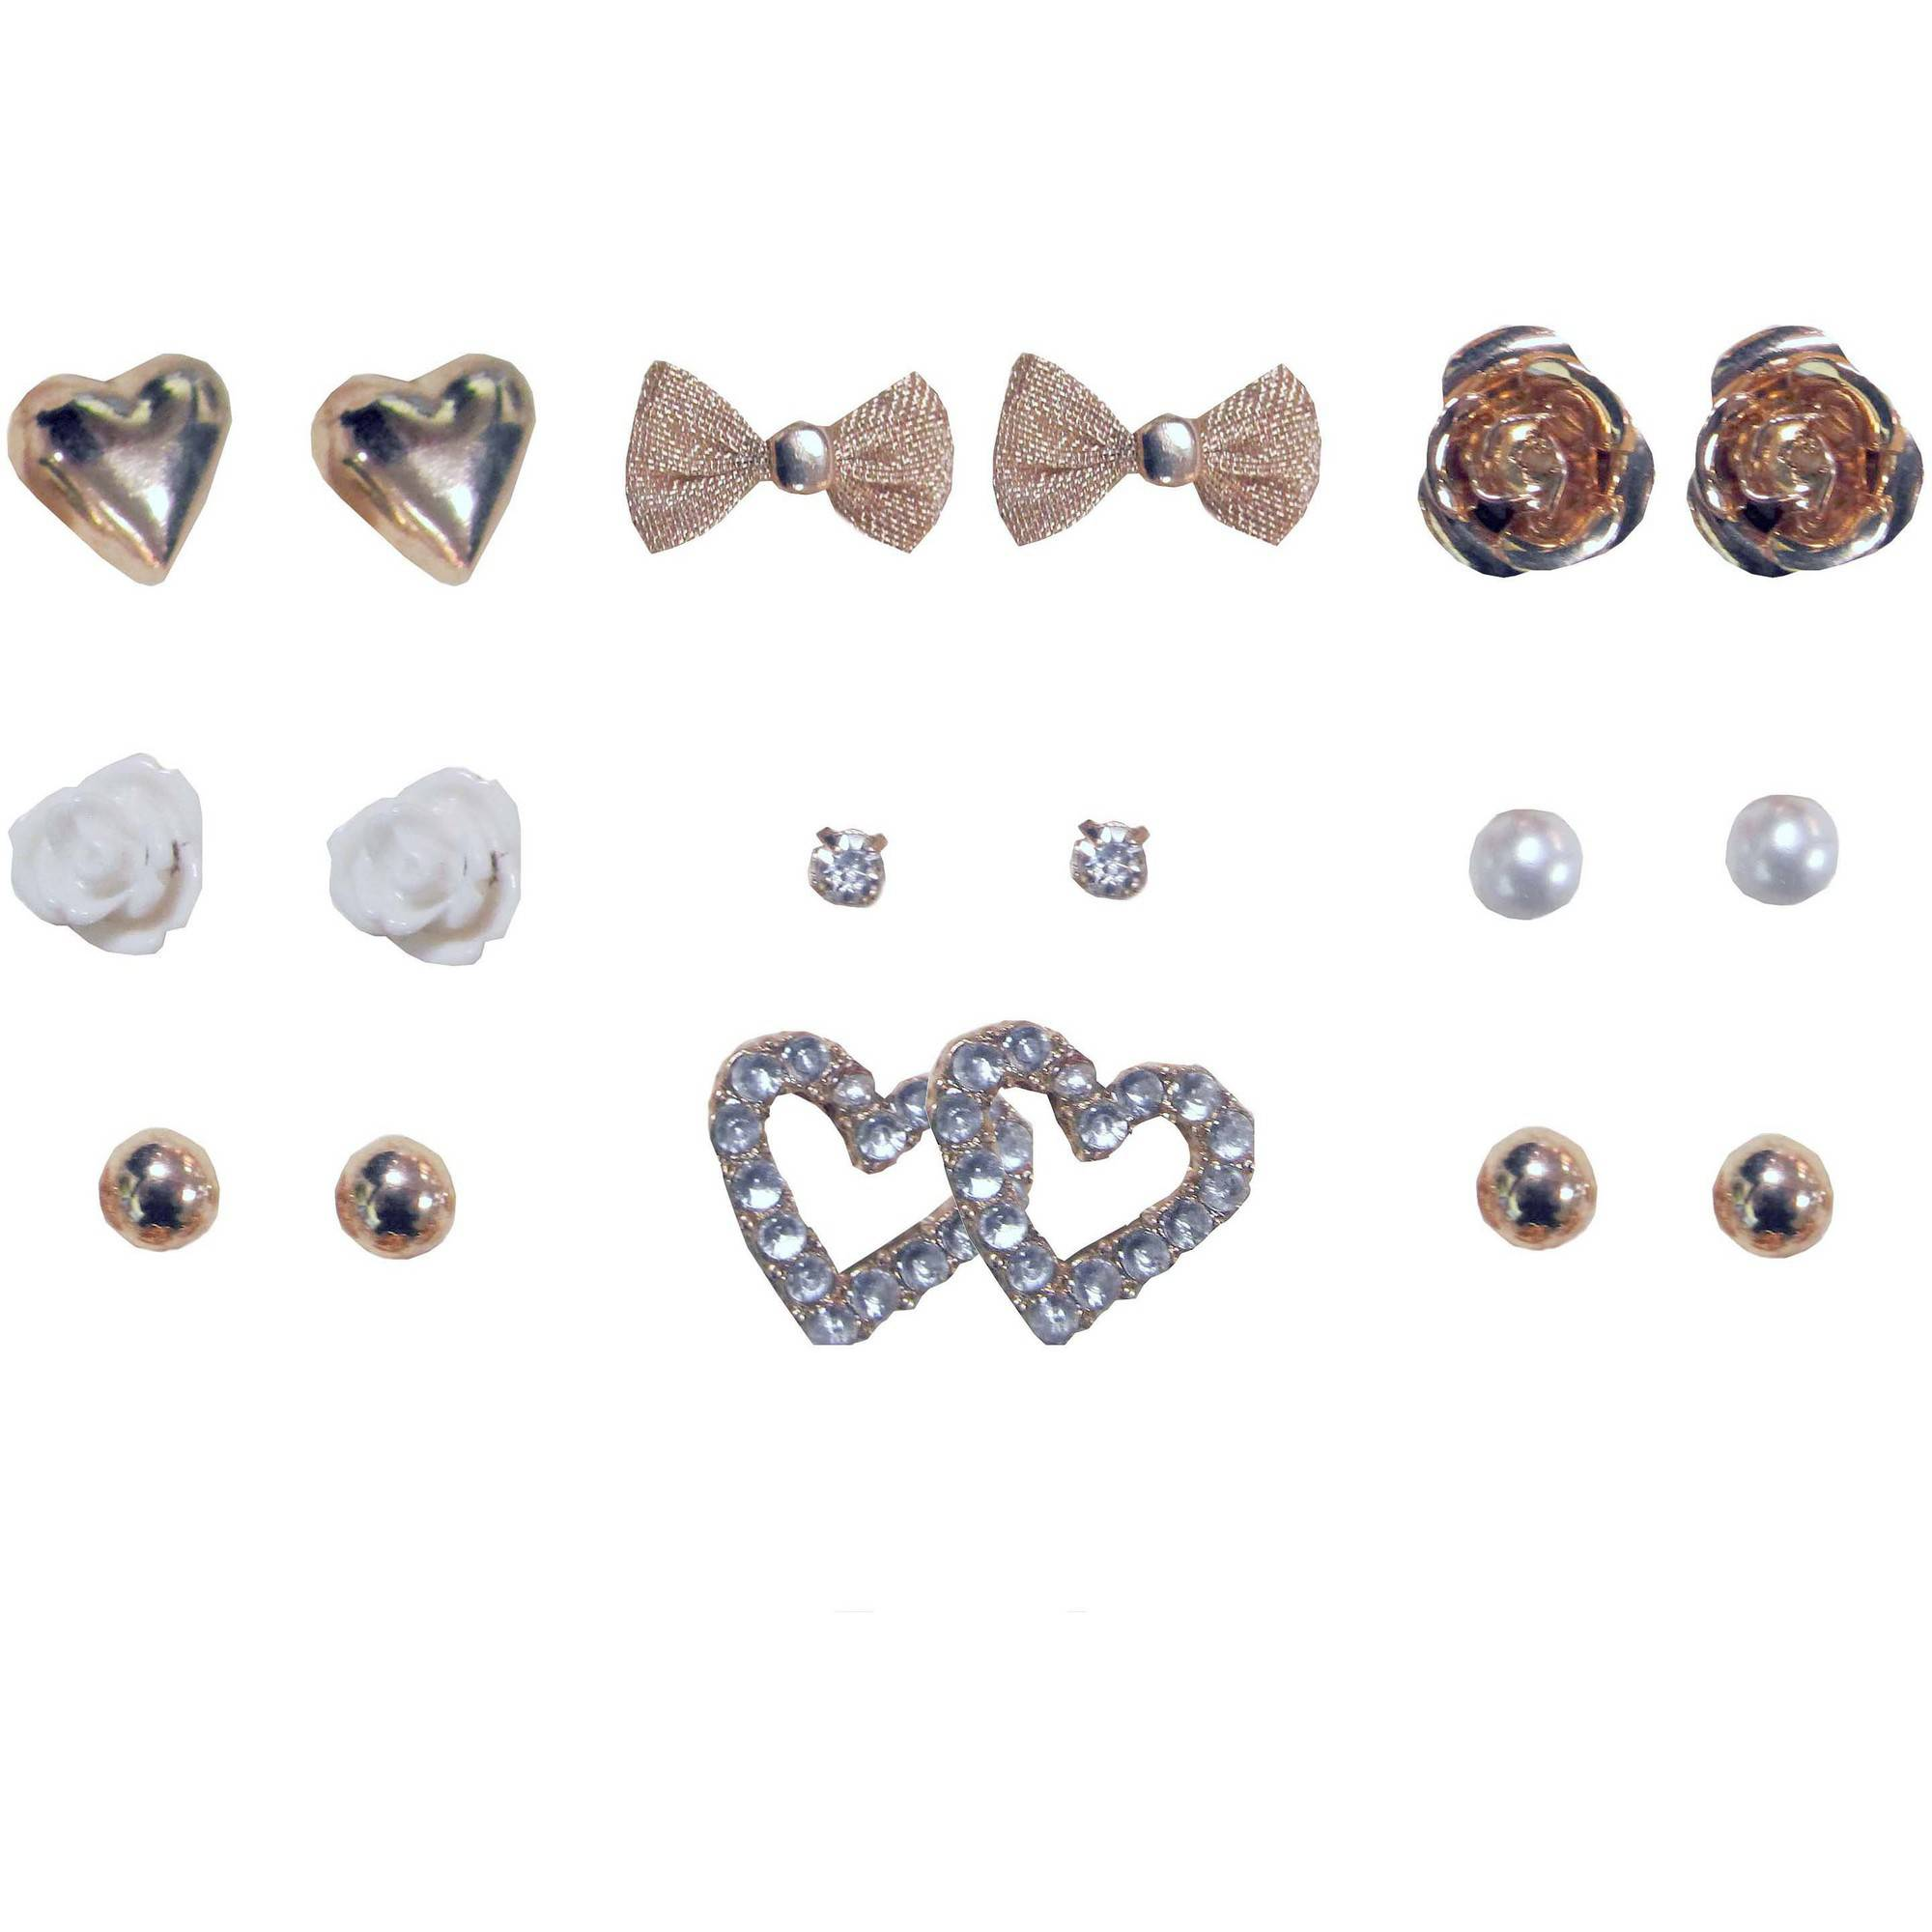 Heart, Flower and Rhinestone Multiple Earring Set, 9-Pack